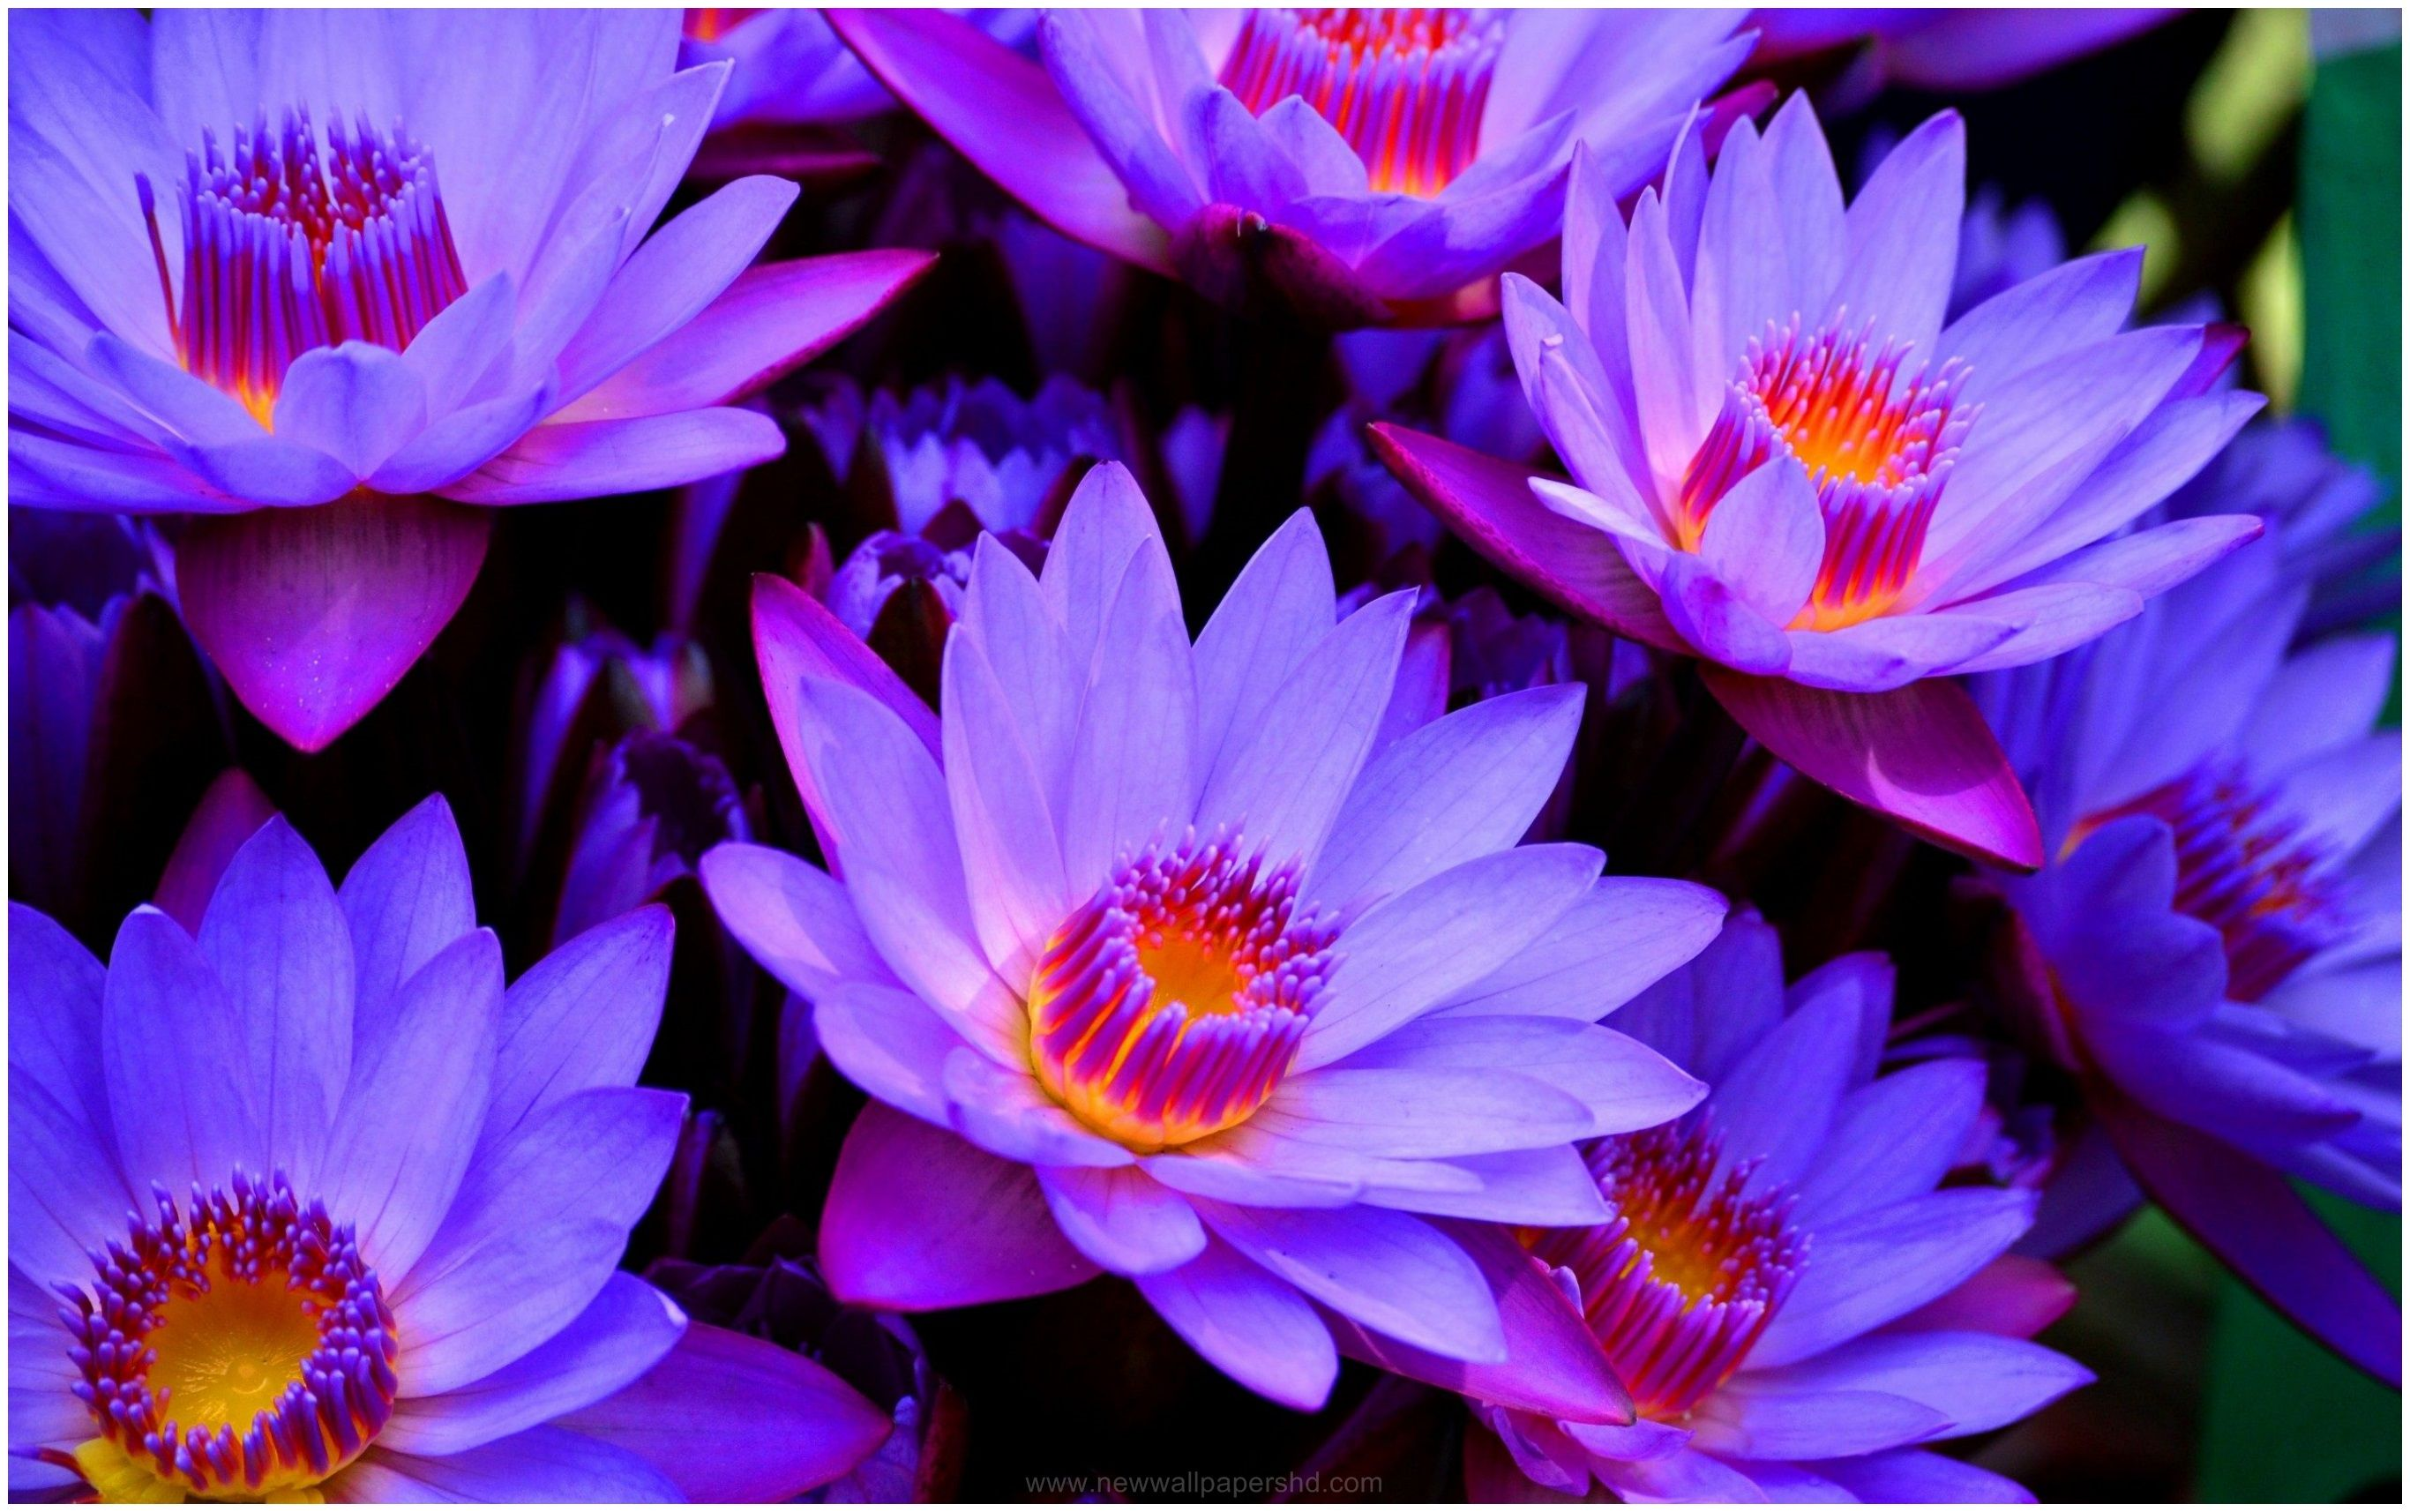 Blue lotus flower hd wallpaper blue lotus pinterest blue lotus blue lotus flower hd wallpaper izmirmasajfo